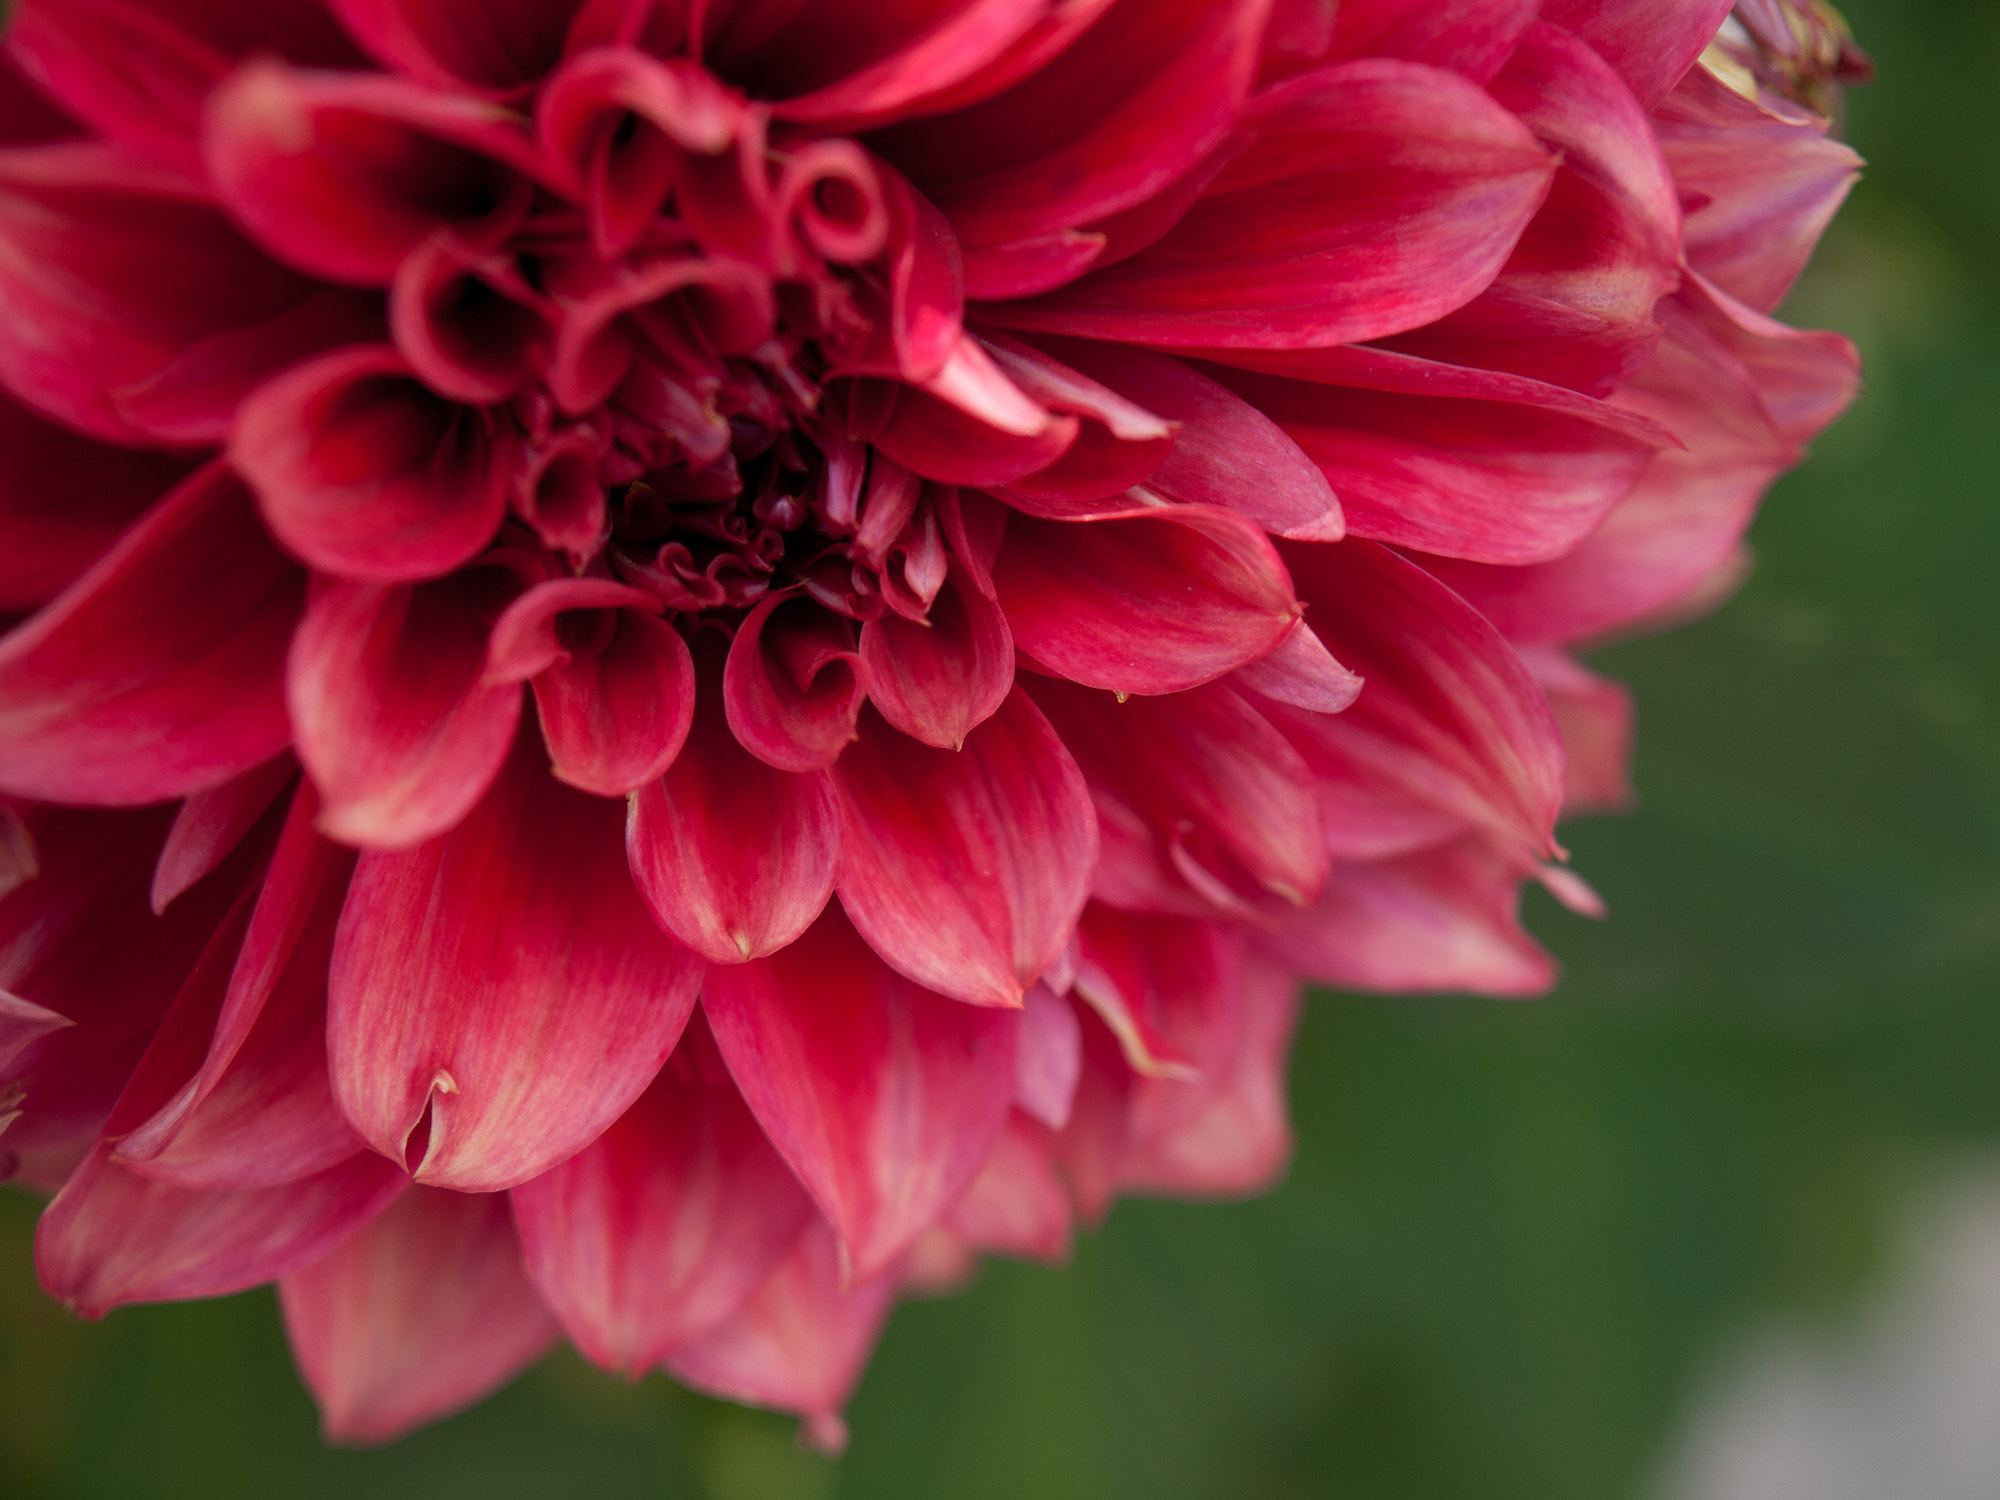 Photograph Dahlia by William Lo on 500px